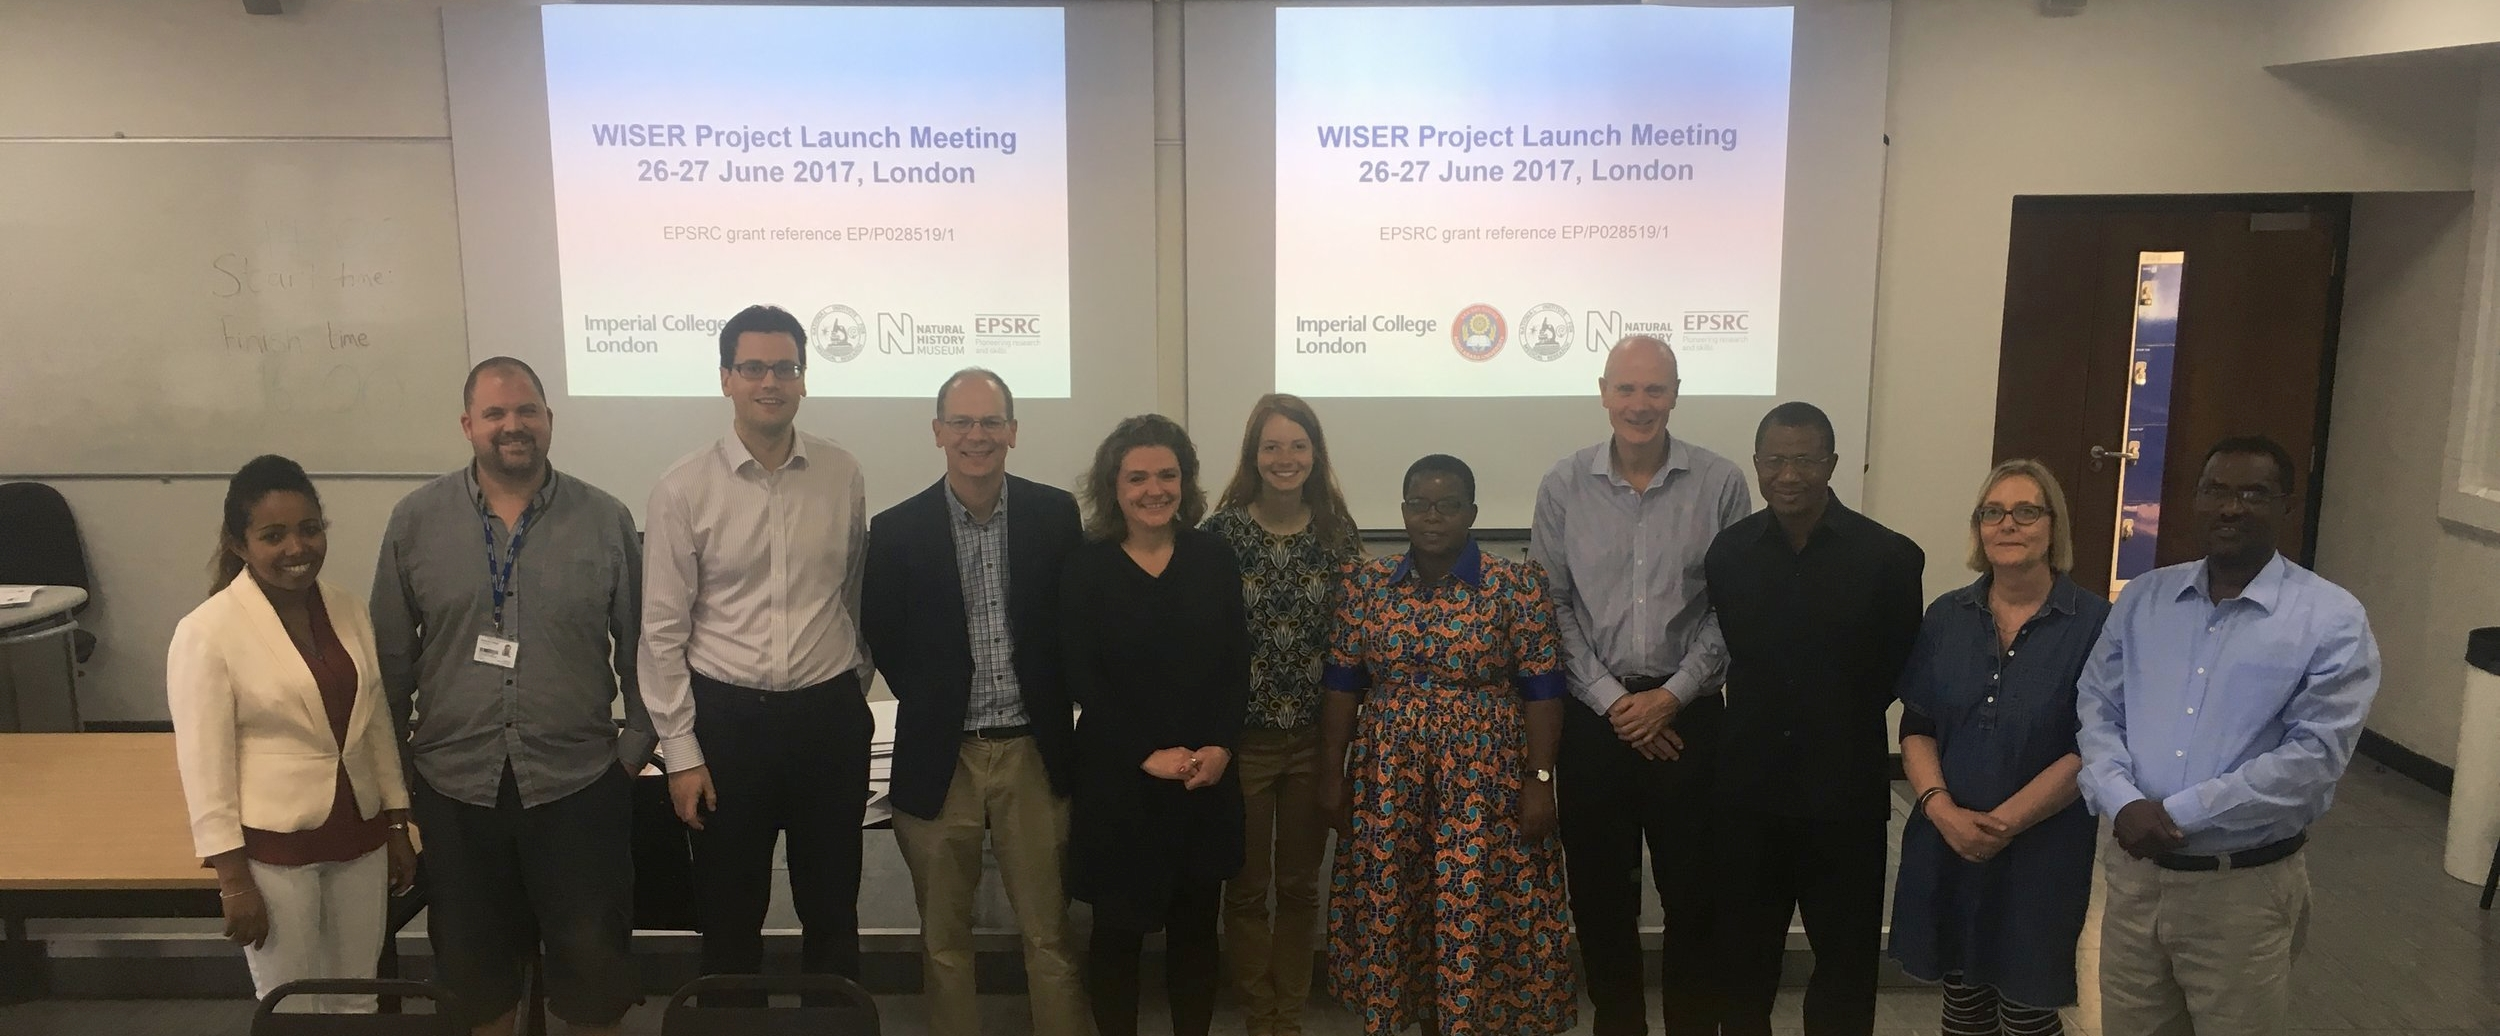 Collaborators from each of the partner institutions attended the WISER launch meeting.